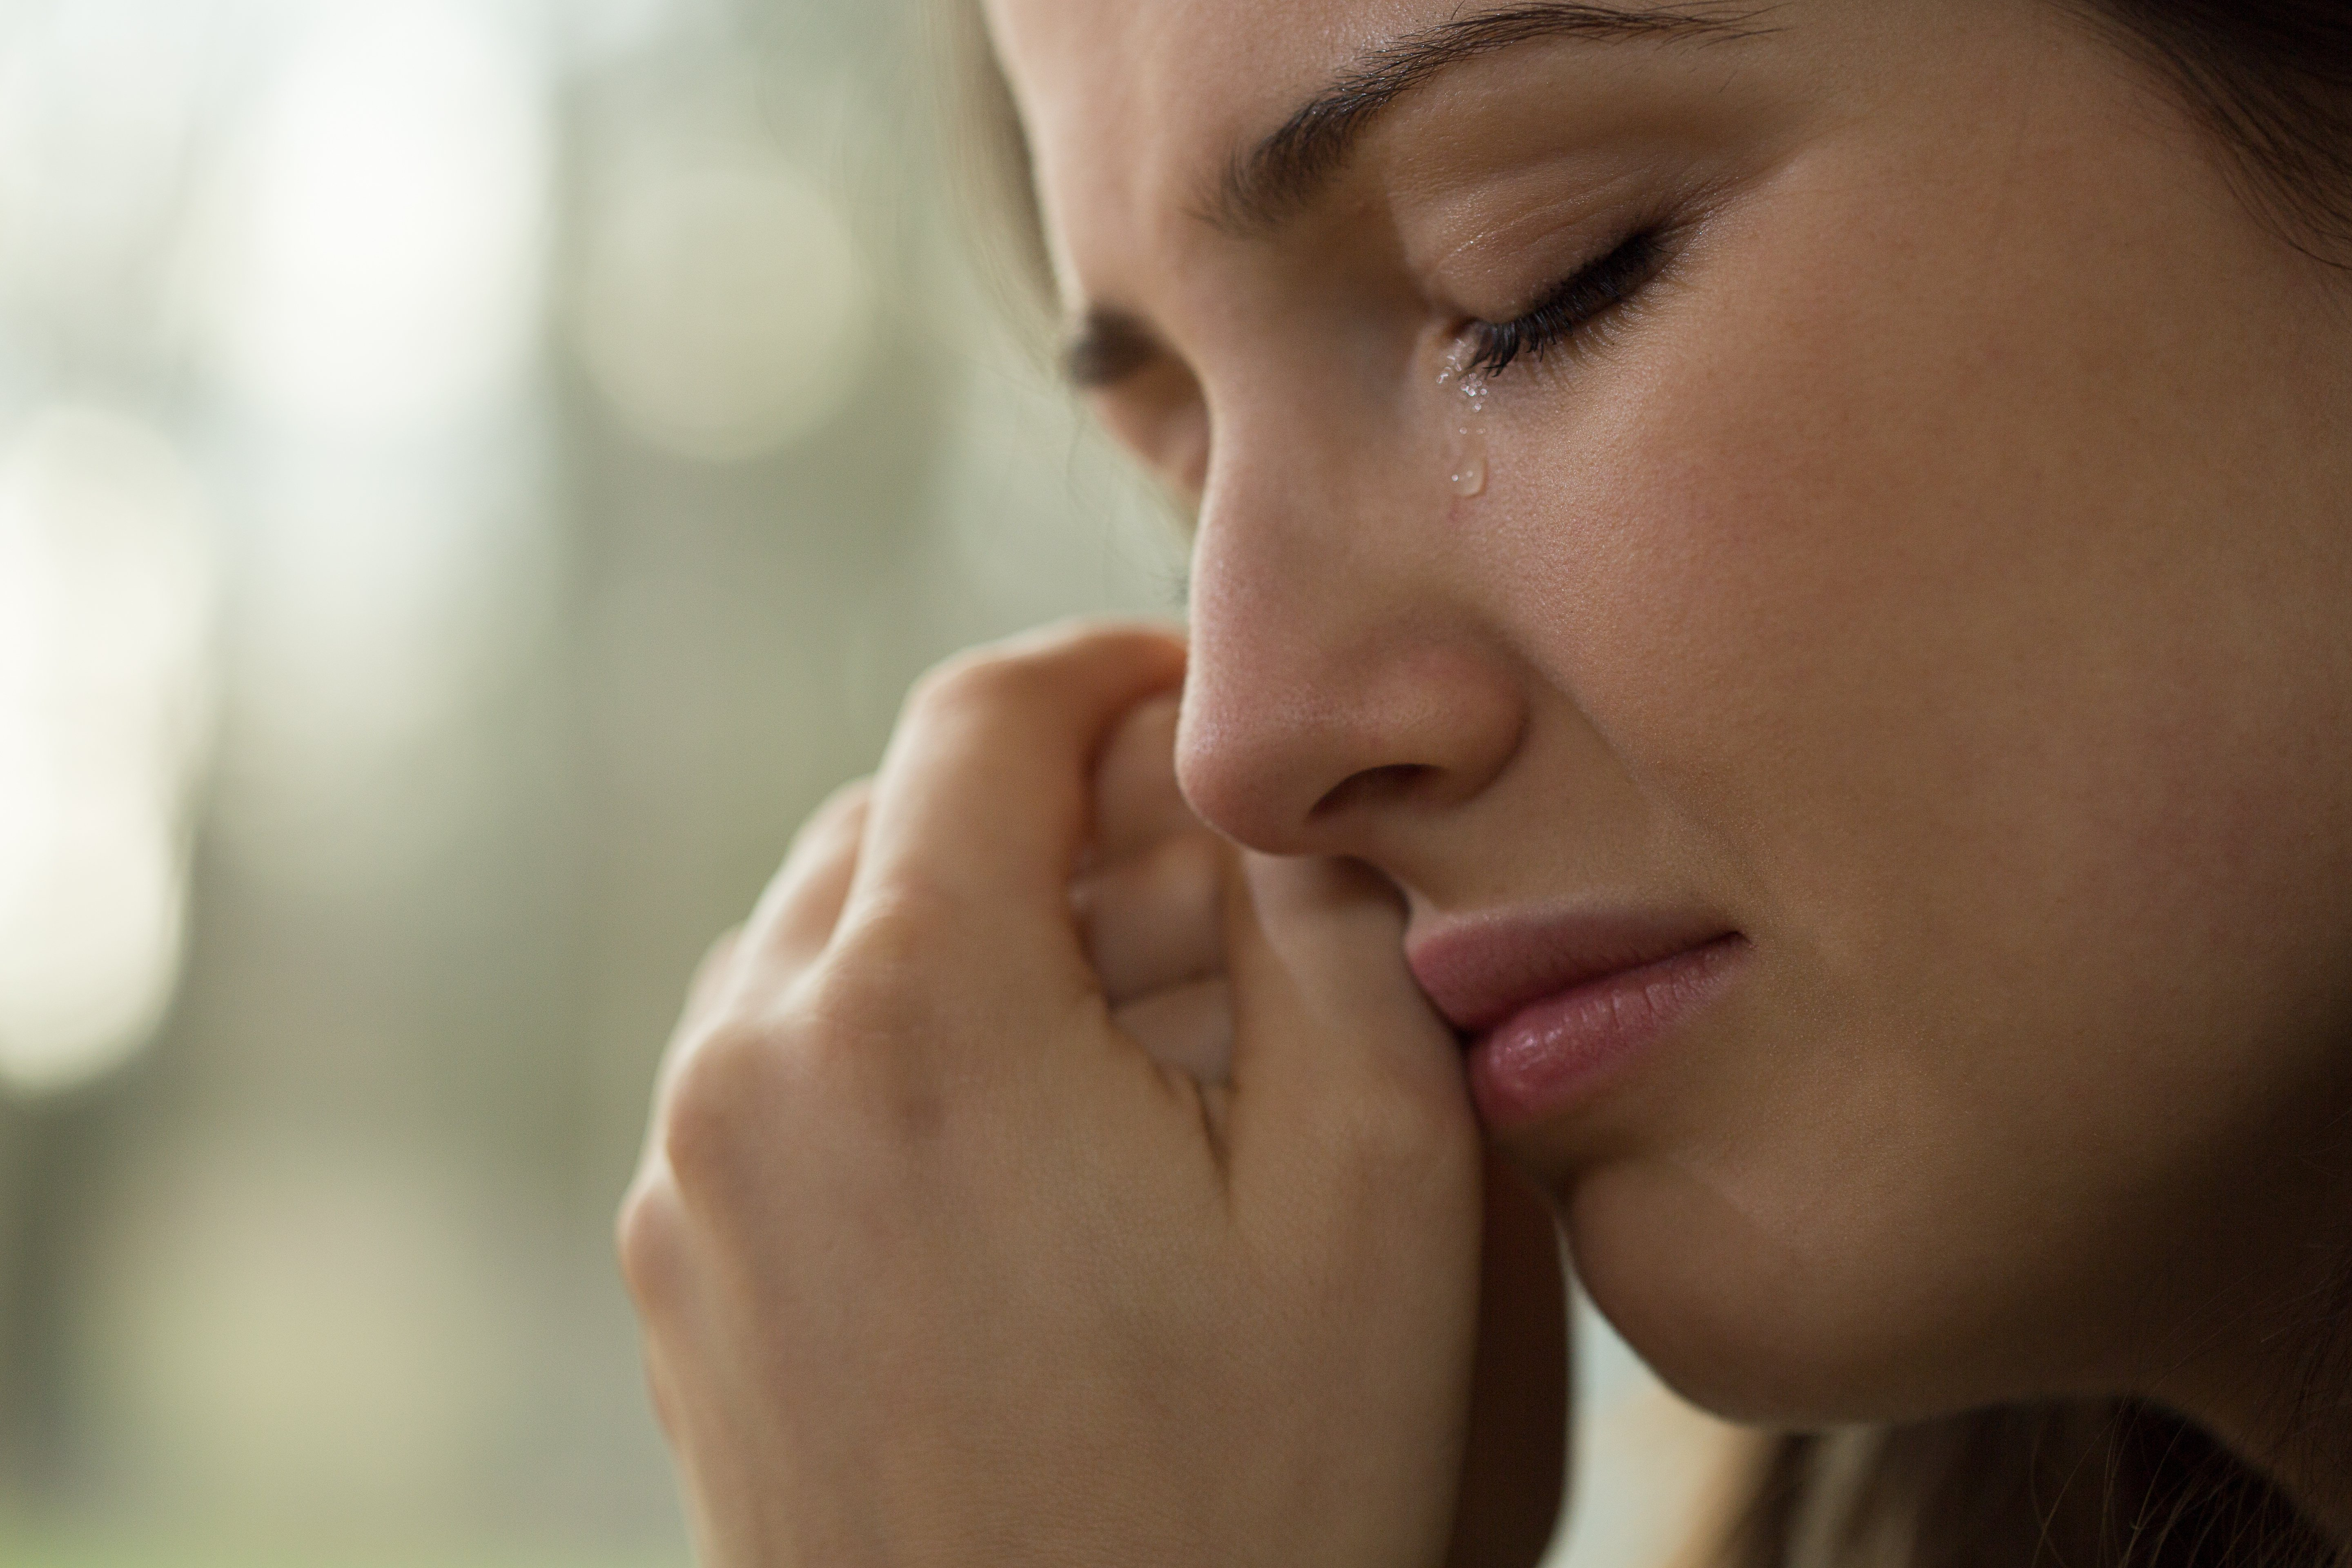 A Crying Woman | Source: Shutterstock